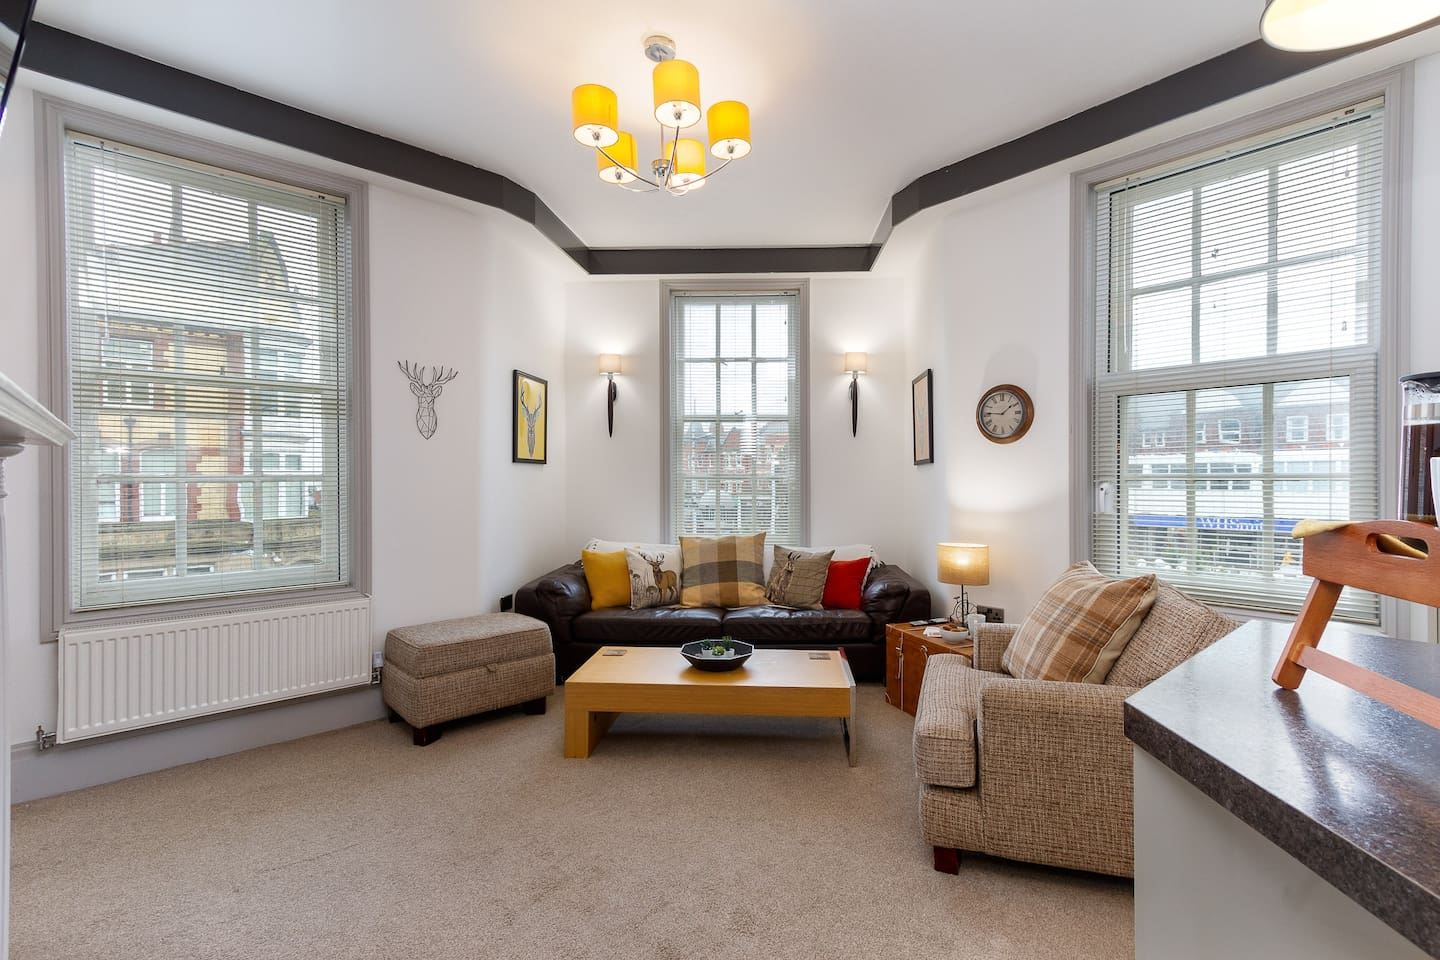 """Lounge  ⭐Our guests say:    """"A comfortable, characterful flat with the highest standard of furnishing, decor and appointments"""" ...  """"We highly recommend staying in these apartments.,you will not be disappointed""""⭐"""